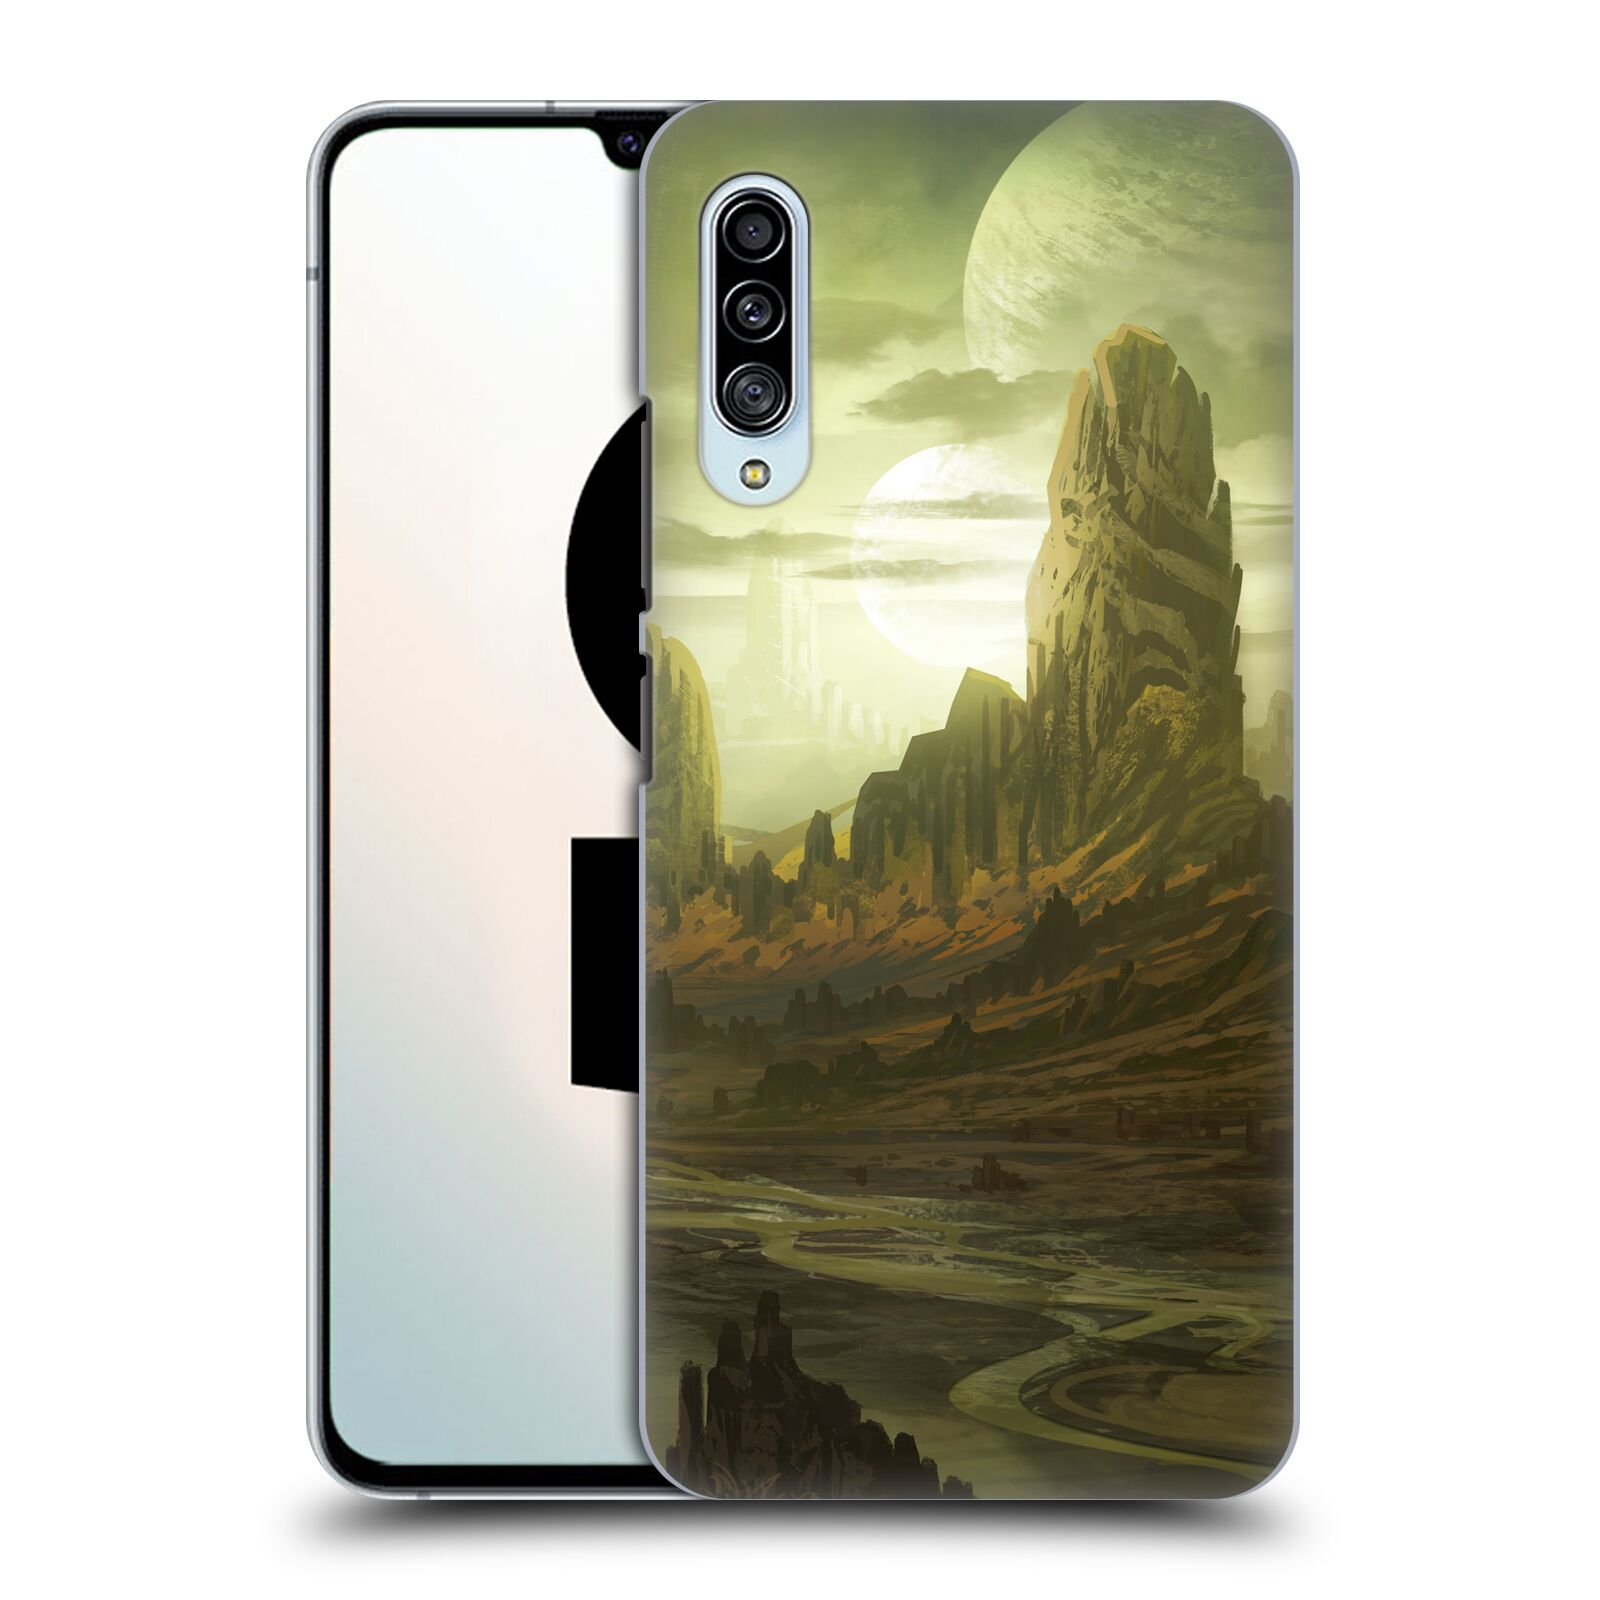 Official Alyn Spiller Environment Art Alien Landscape Case for Samsung Galaxy A90 5G (2019)